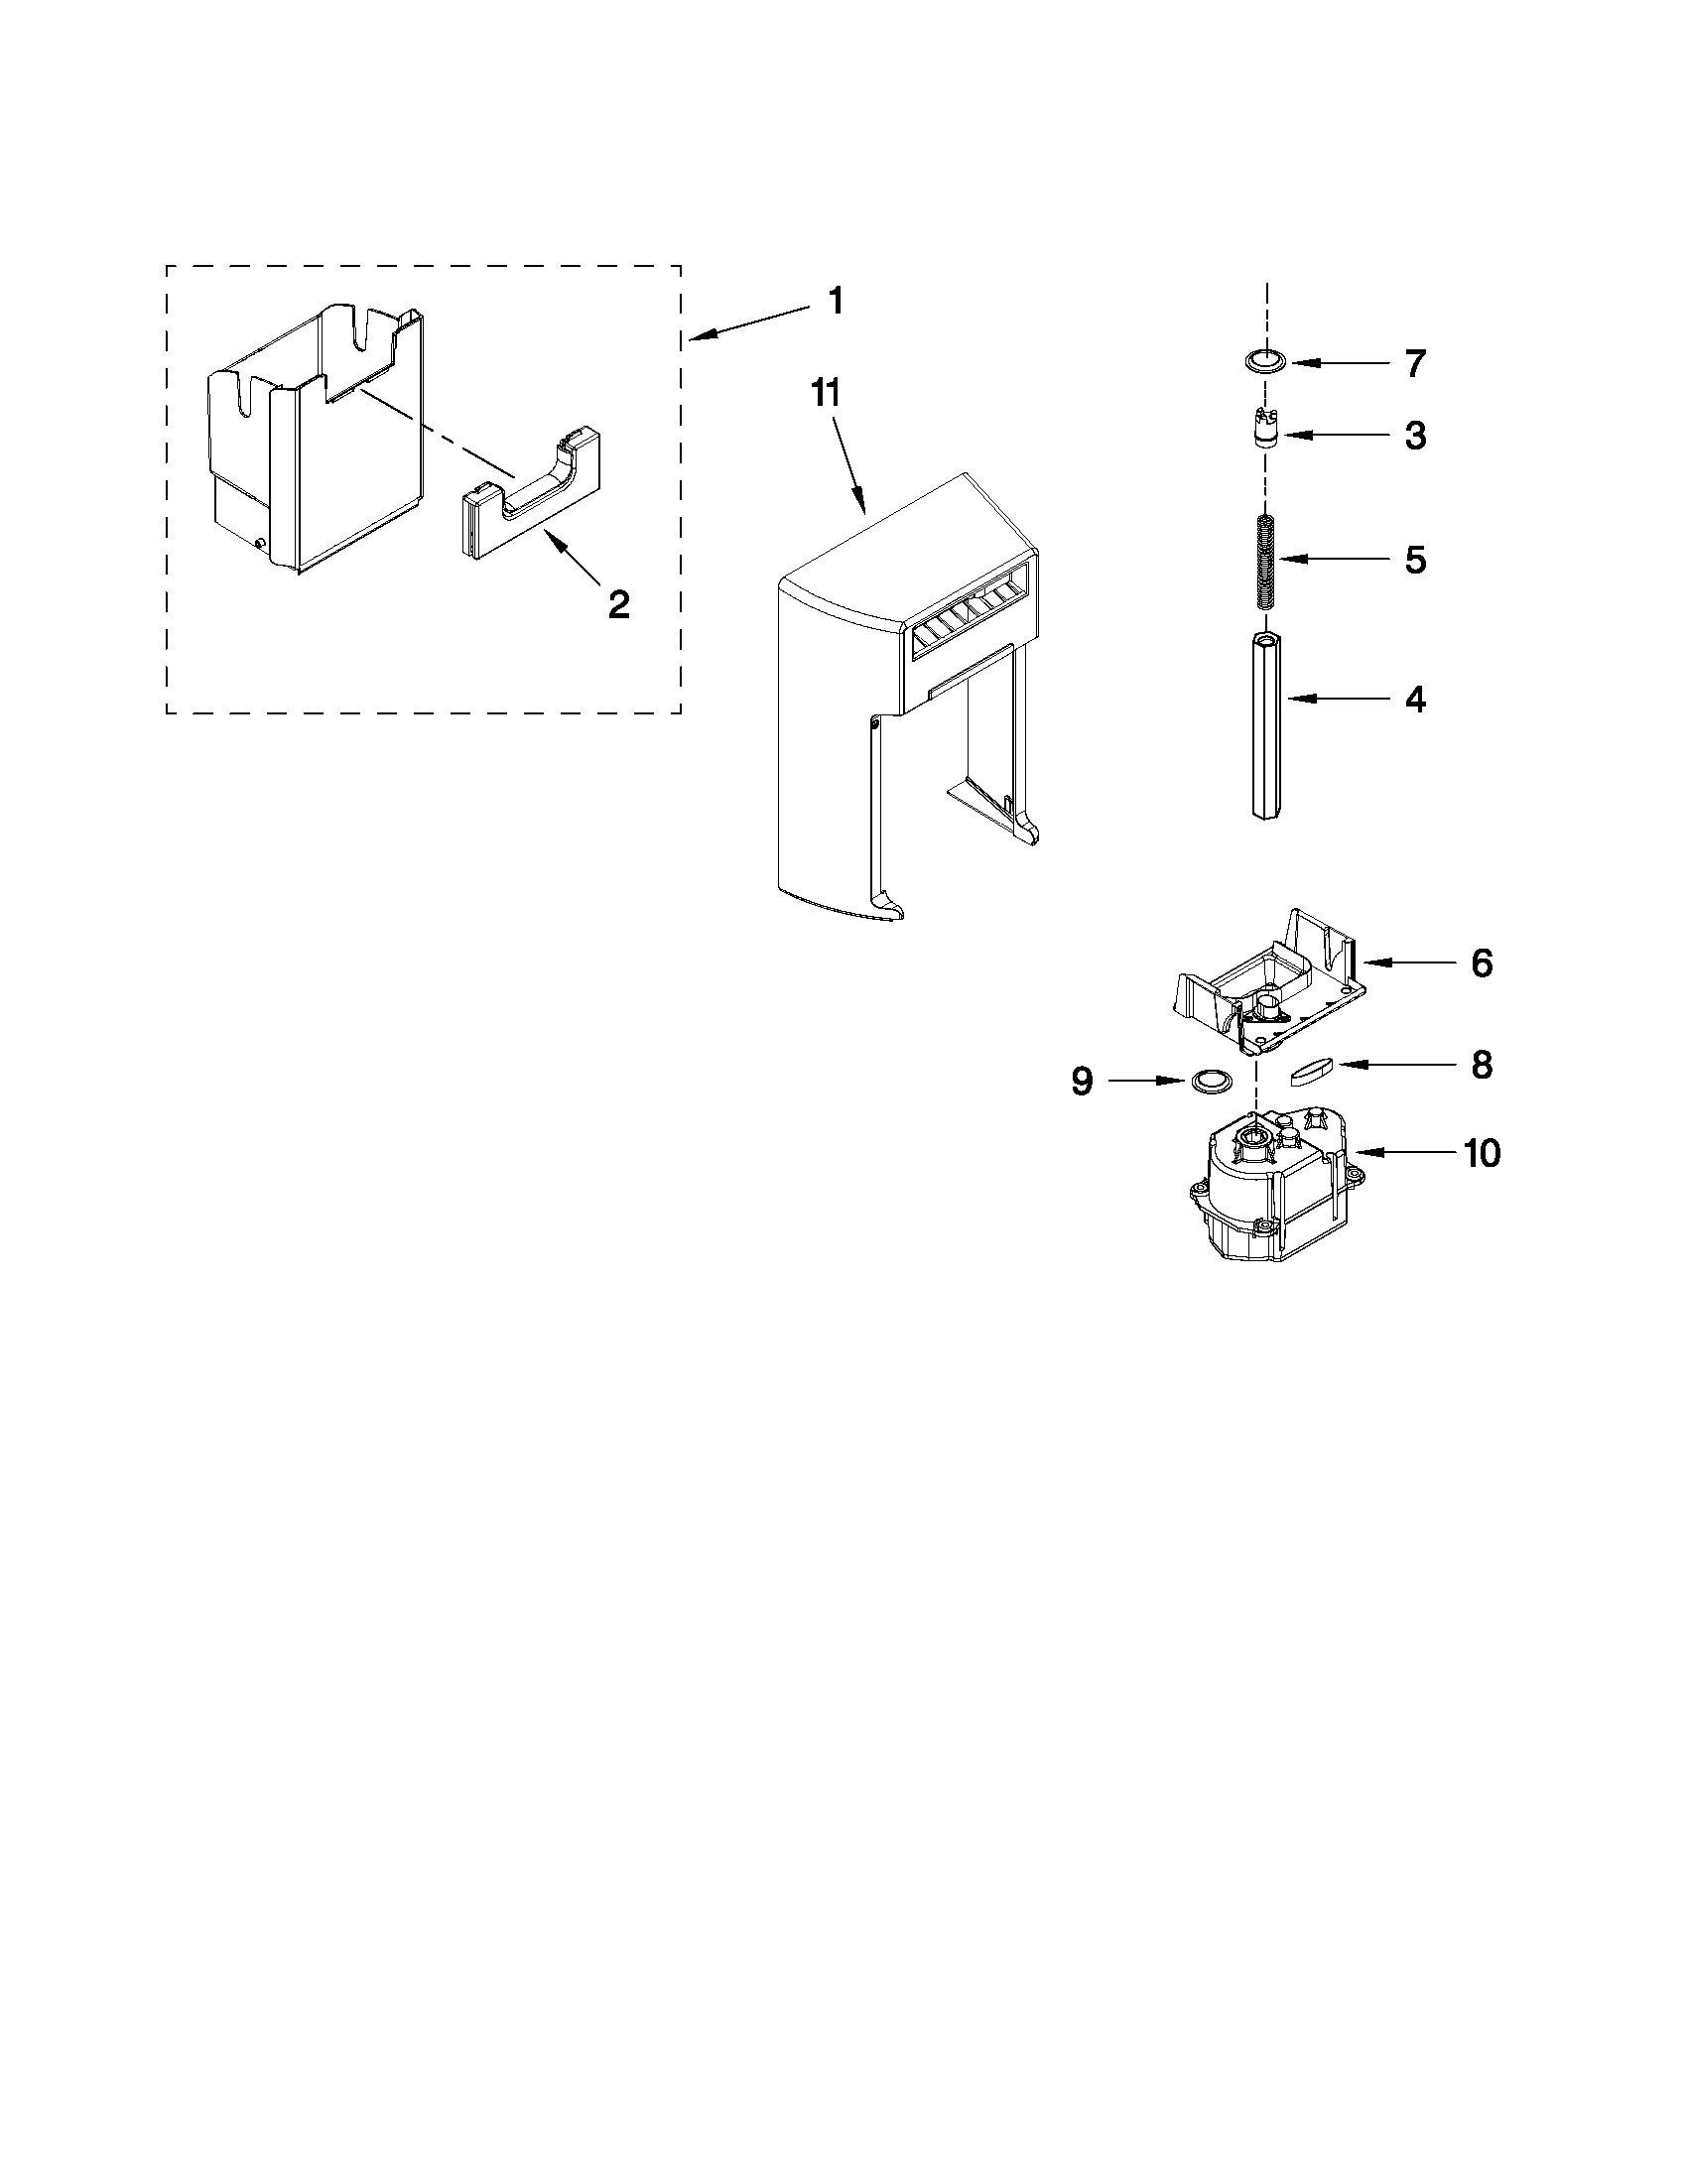 Kenmore Elite 10651149111 motor and ice container parts diagram